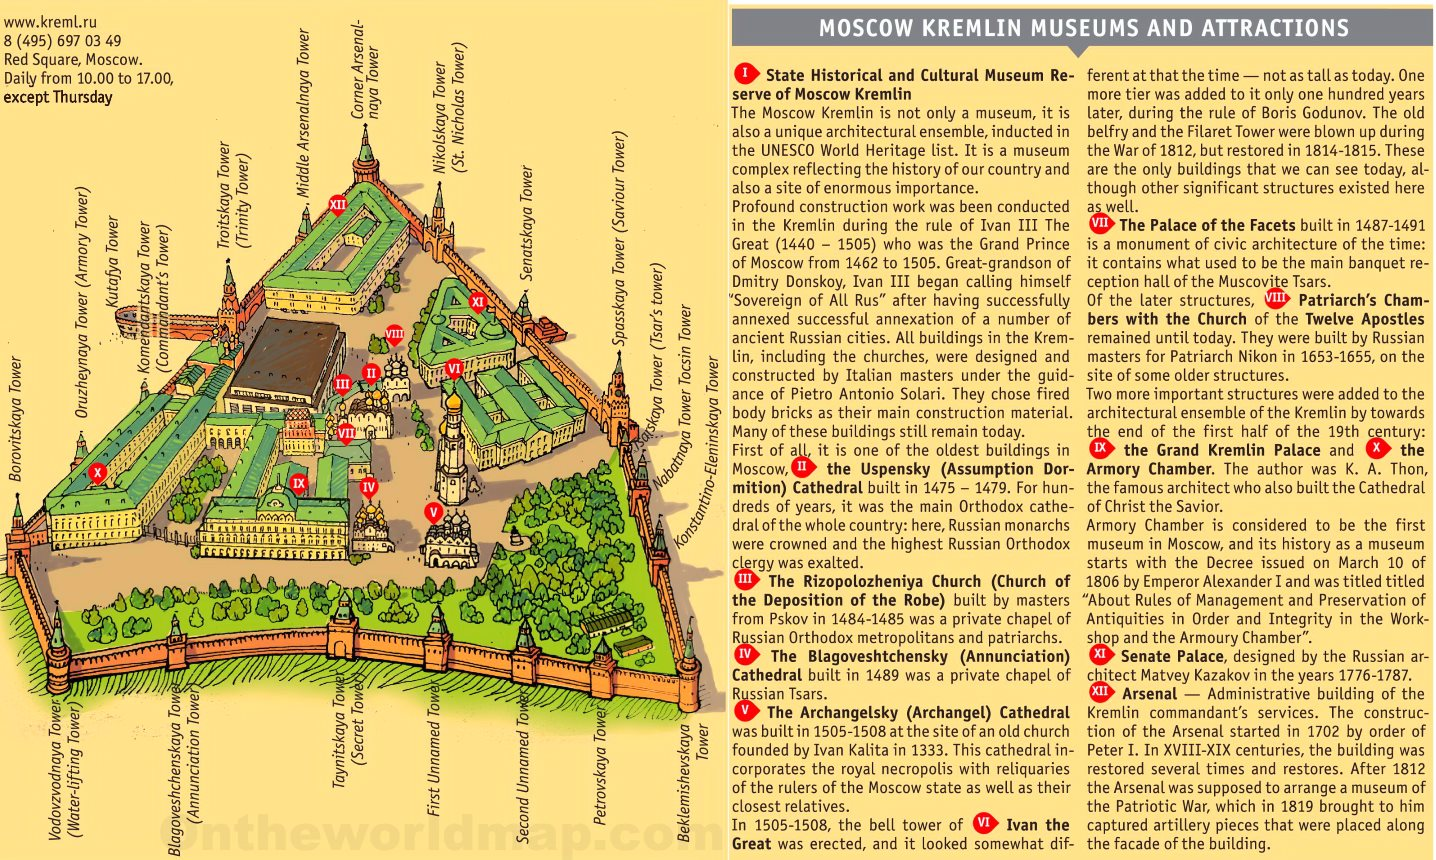 Moscow Kremlin tourist attractions map